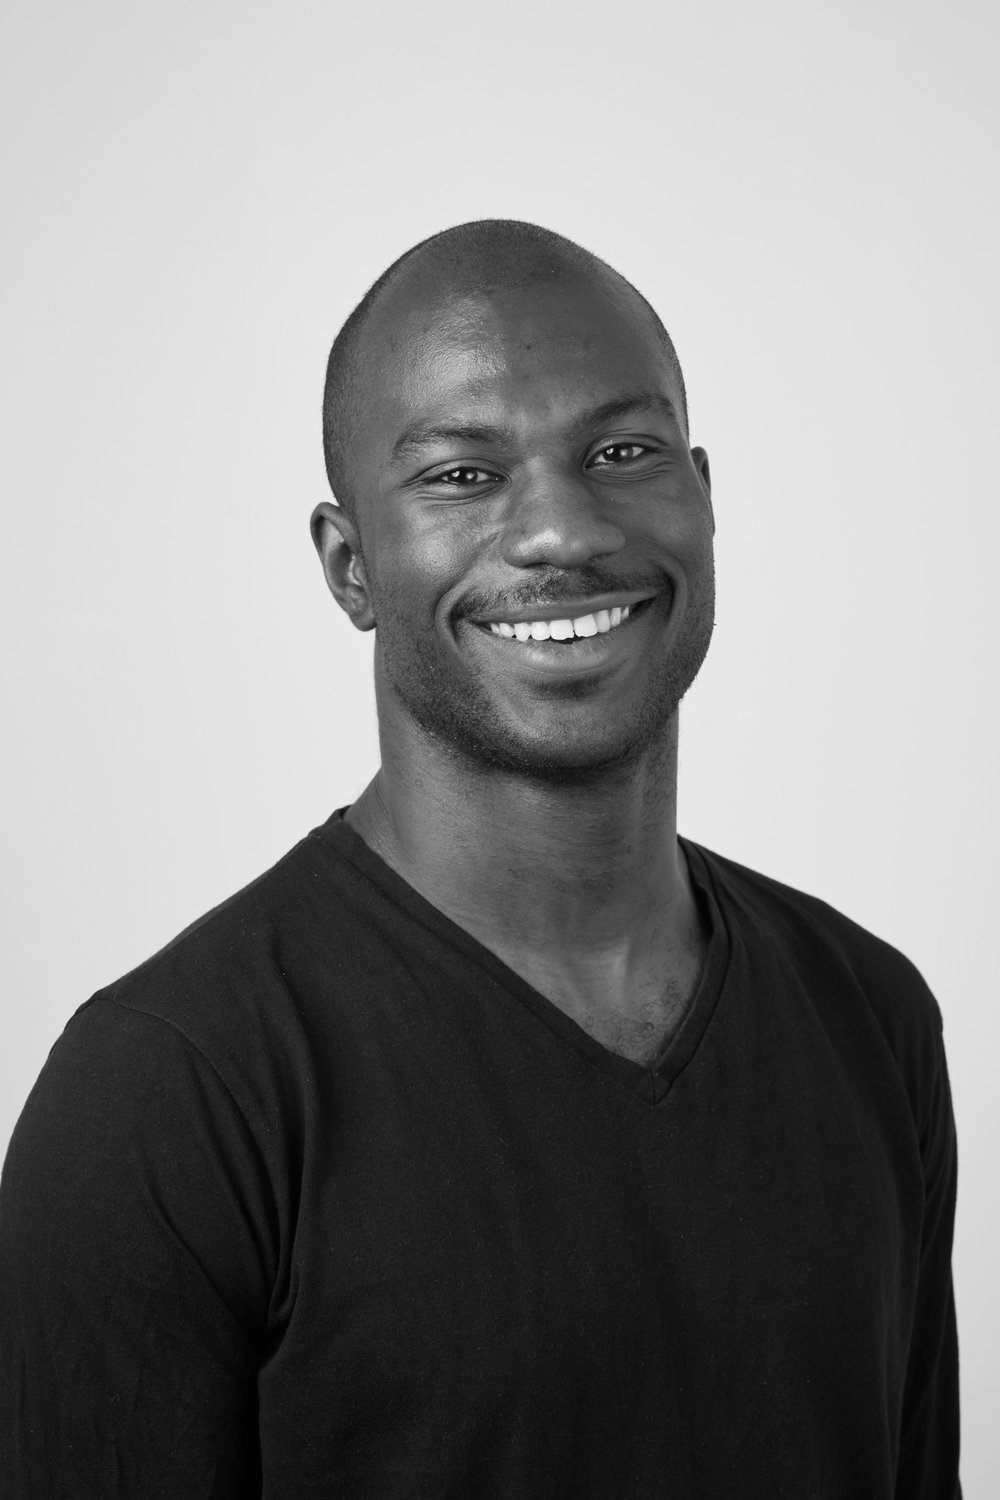 Folu Odimayo  was born in Lagos, Nigeria and brought up in Sutton, South west London, where he started his journey into dance at the Glenthorne High School for Performing Arts where he was a member of the AD1 youth dance company. Odimayo continued his training in 2013 when he joined The Place CAT scheme, whilst also becoming a member of the National Youth Dance Company under the guest artistic directorship of Akram Khan and Sidi Larbi Cherkaoui.  In 2015 Odimayo moved to Leeds where he attained his BPA (Hons) from the Northern School of Contemporary Dance. During his time at NSCD Odimayo worked with several choreographers such as Gary Clarke, Deed, Fernanda Prata and Francessco Scavetta.  As a freelancer Odimayo has worked with Joe Moran, Tribe// dance company, Gavin Coward's Paradox Pictures and Michael Keegan Dolan.